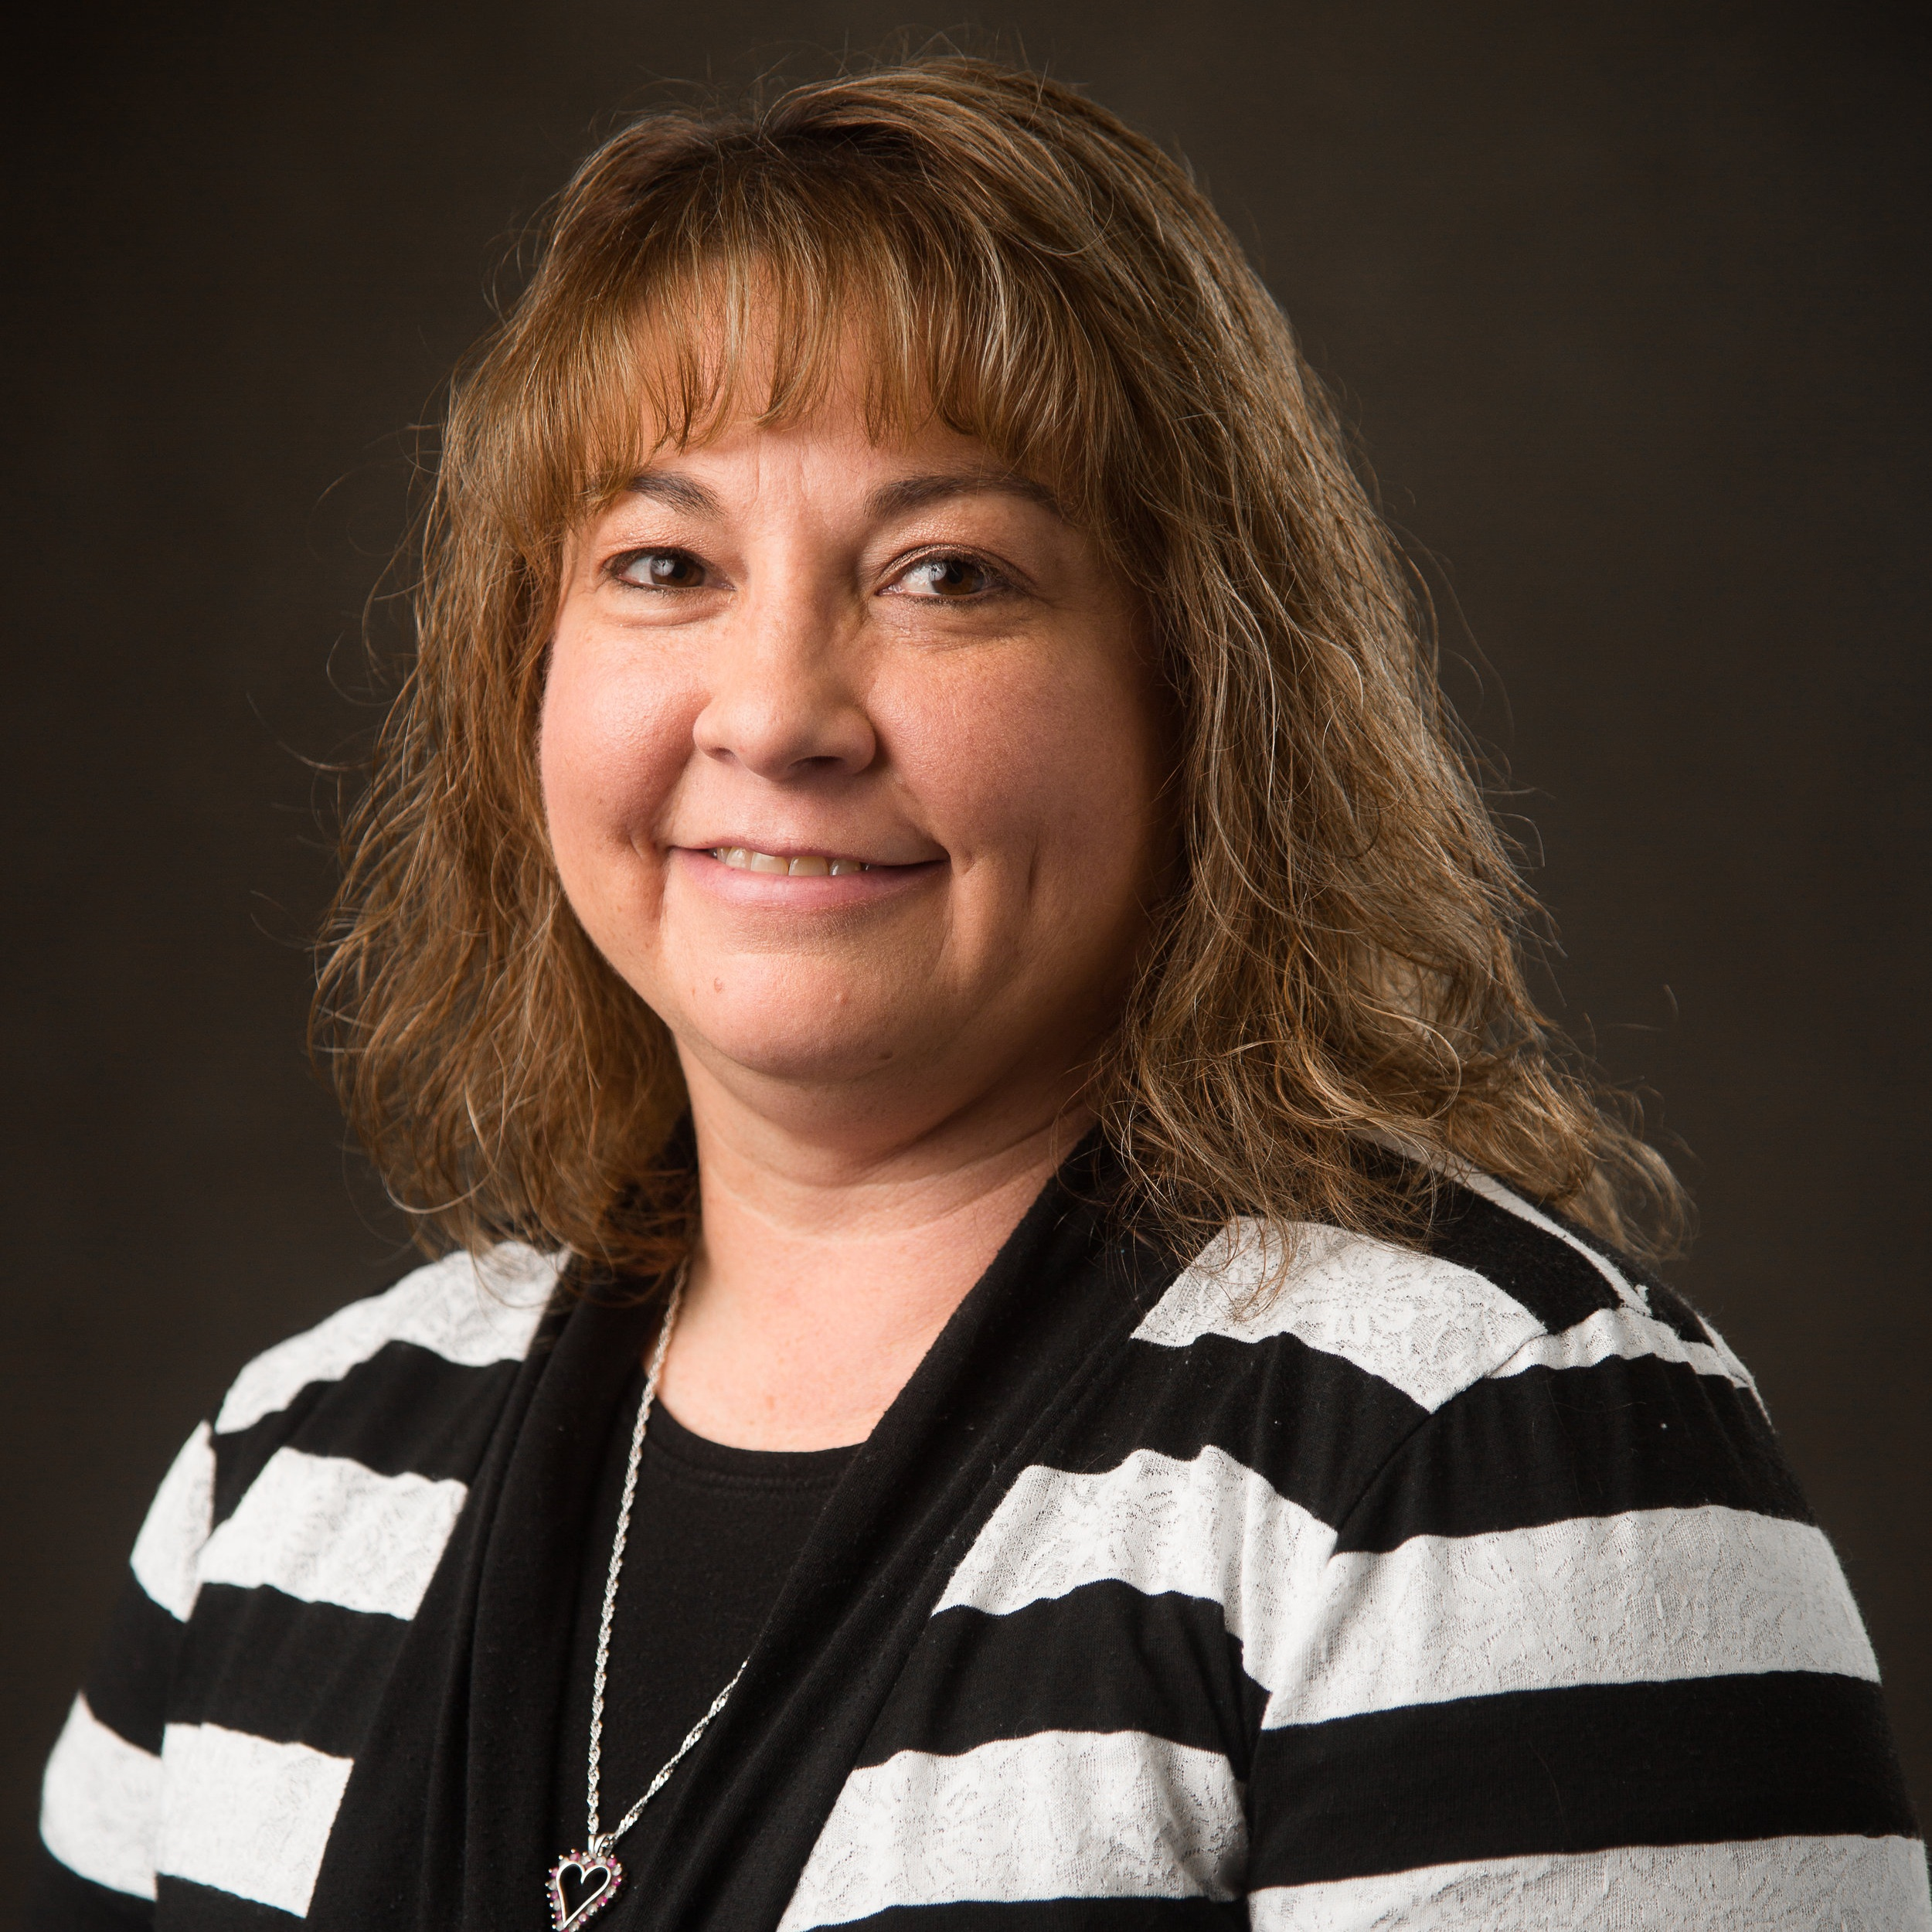 Denise Keyes - Denise is the Fiscal Director for Buckeye Hills Regional Council and has been a part of our team since October 1994.